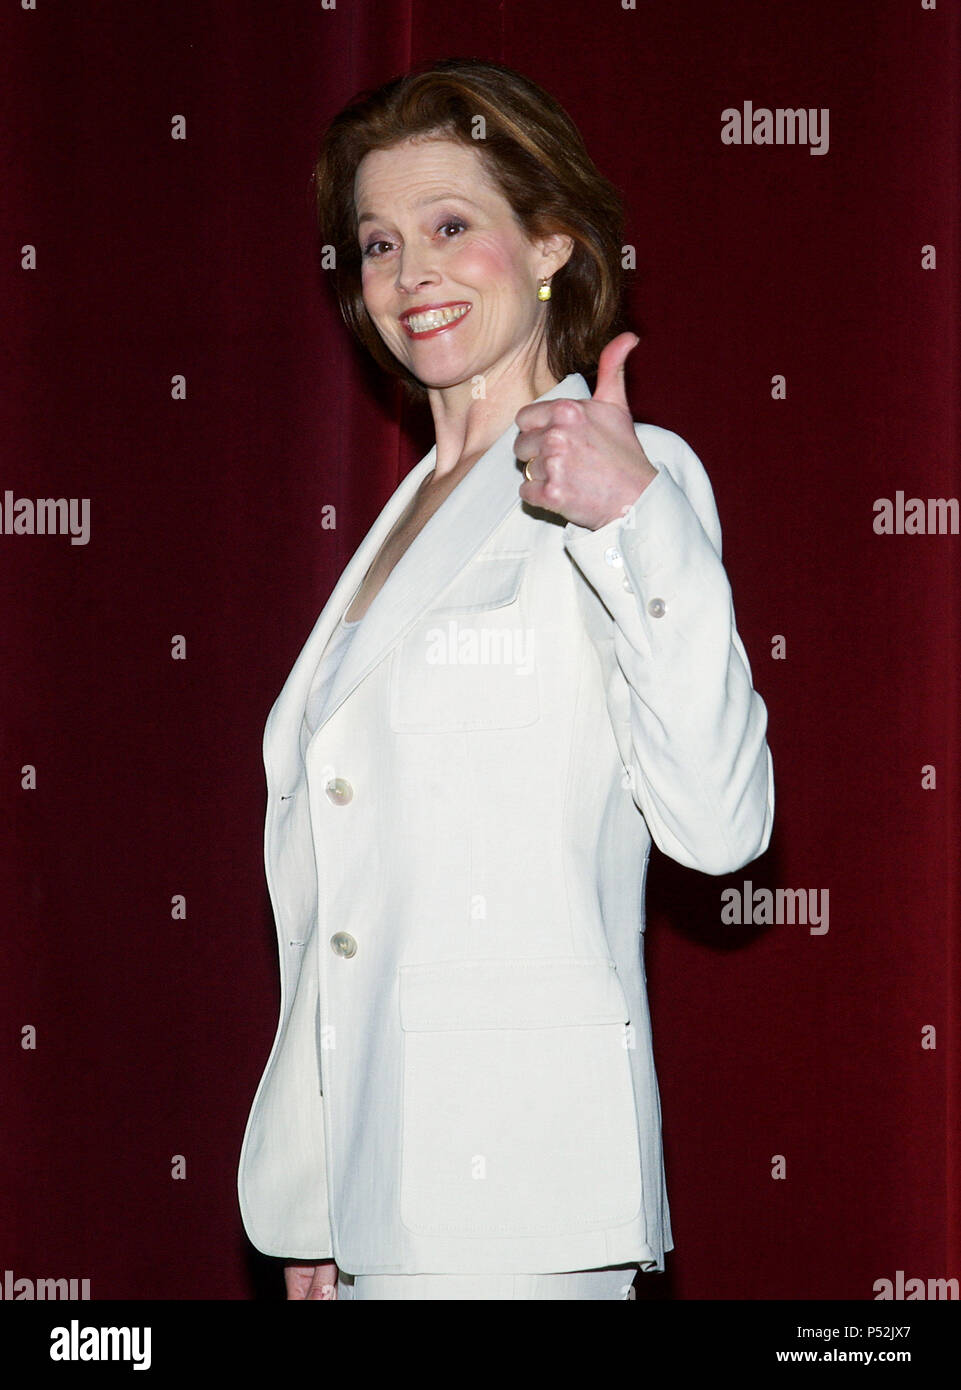 Sigourney Weaver presenting the 76th Academy Awards Nominees at the Academy of Motion Pictures and Sciences in Los Angeles. January, 27, 2004.WeaverSigourney001 Red Carpet Event, Vertical, USA, Film Industry, Celebrities,  Photography, Bestof, Arts Culture and Entertainment, Topix Celebrities fashion /  Vertical, Best of, Event in Hollywood Life - California,  Red Carpet and backstage, USA, Film Industry, Celebrities,  movie celebrities, TV celebrities, Music celebrities, Photography, Bestof, Arts Culture and Entertainment,  Topix, vertical, one person,, from the years , 2003 to 2005, inquiry  - Stock Image